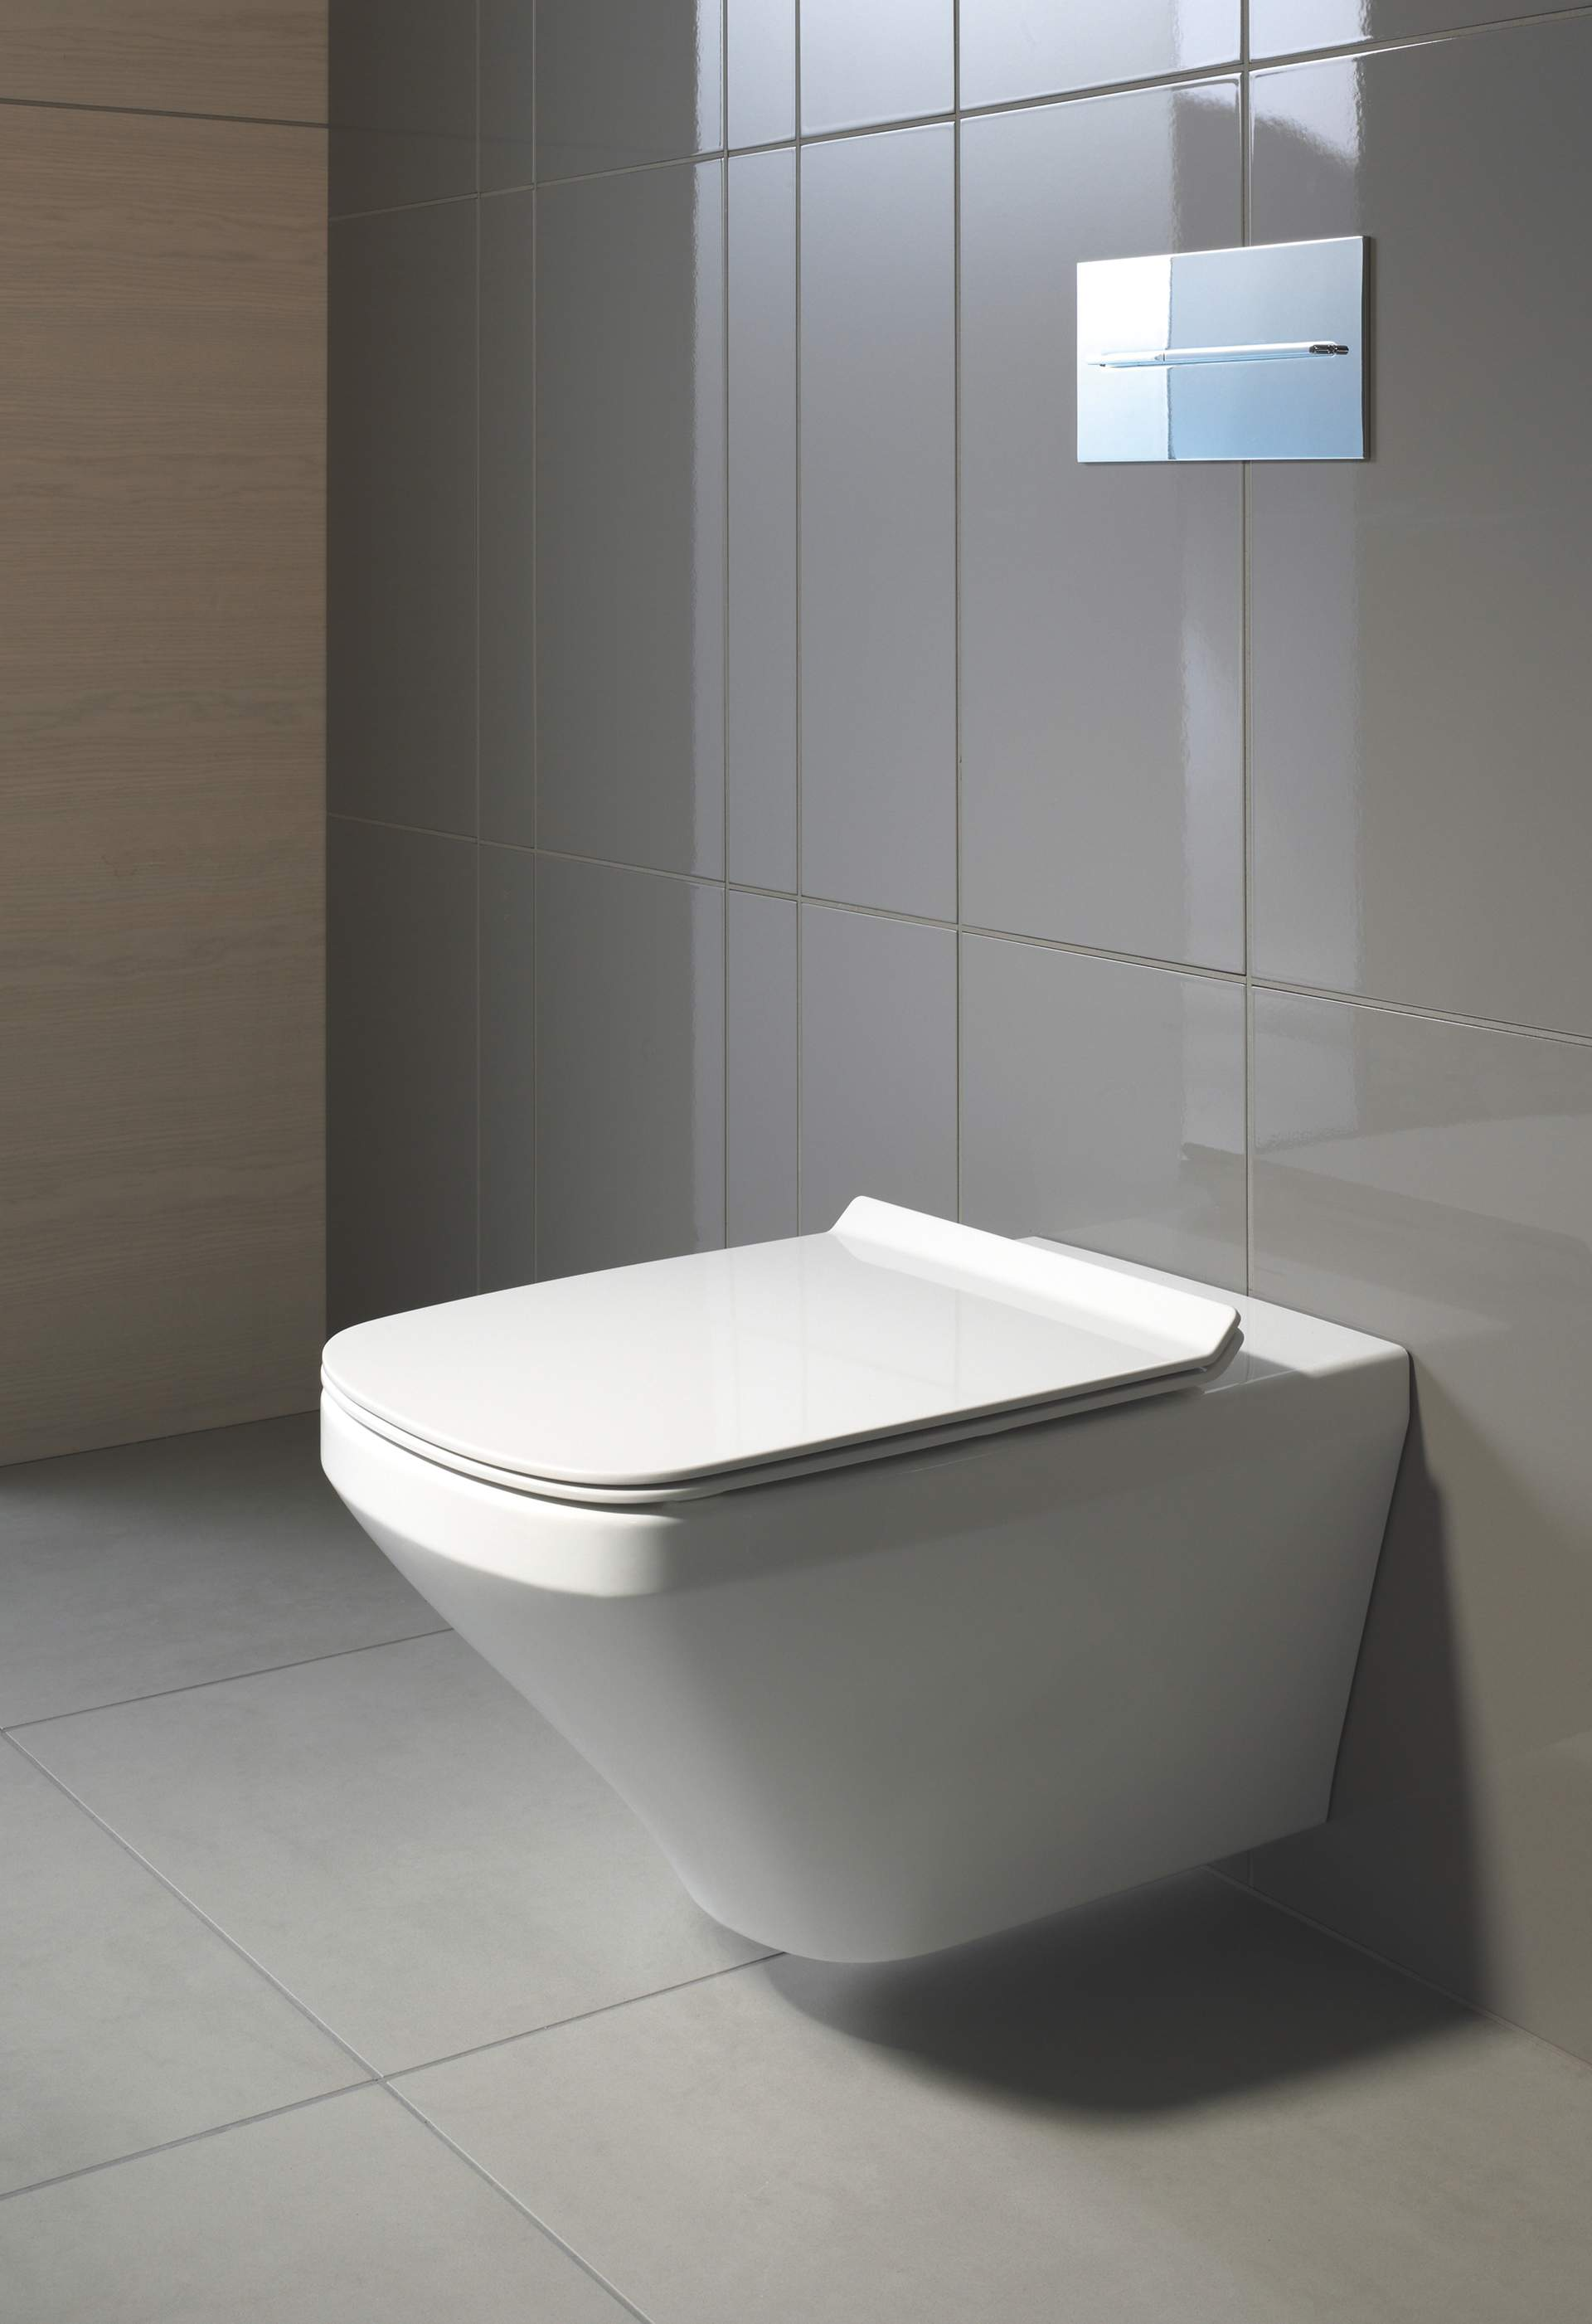 Prime Durastyle Toilet Wall Mounted 253709 Duravit Pabps2019 Chair Design Images Pabps2019Com